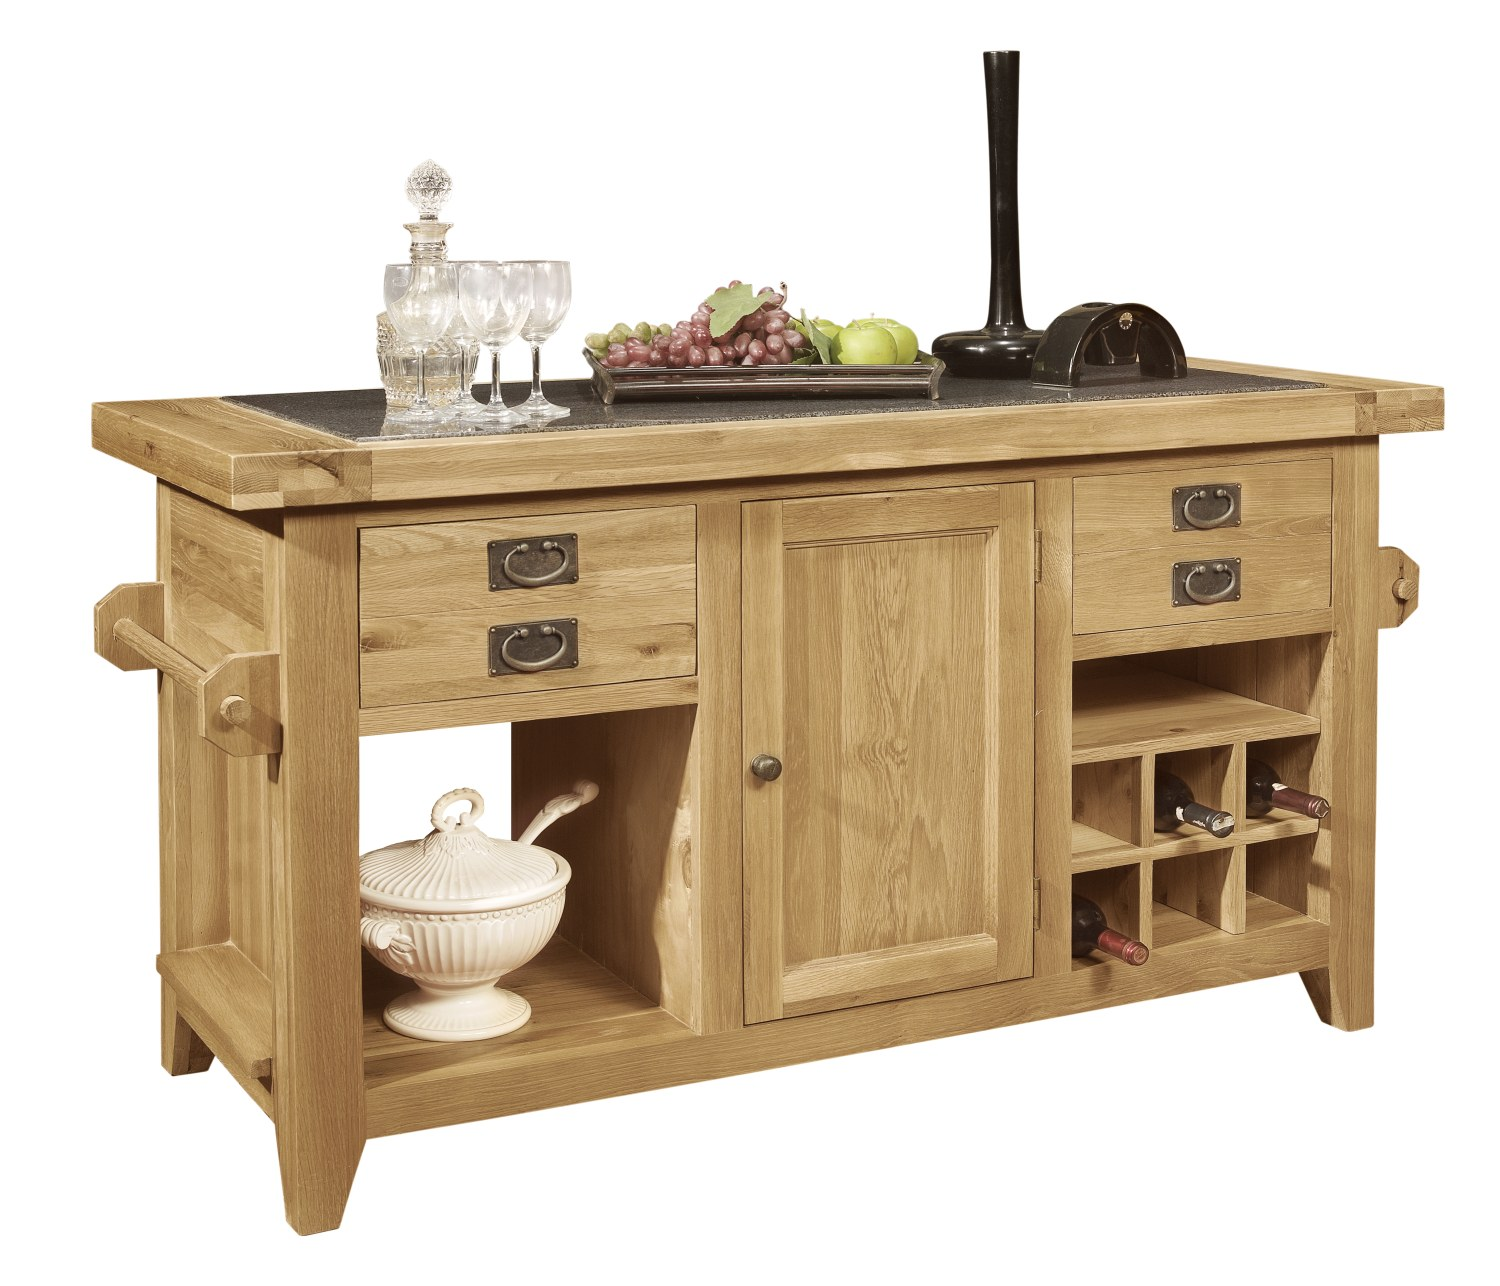 Kitchen Island Furniture Product: Panama Solid Oak Furniture Large Granite Top Freestanding